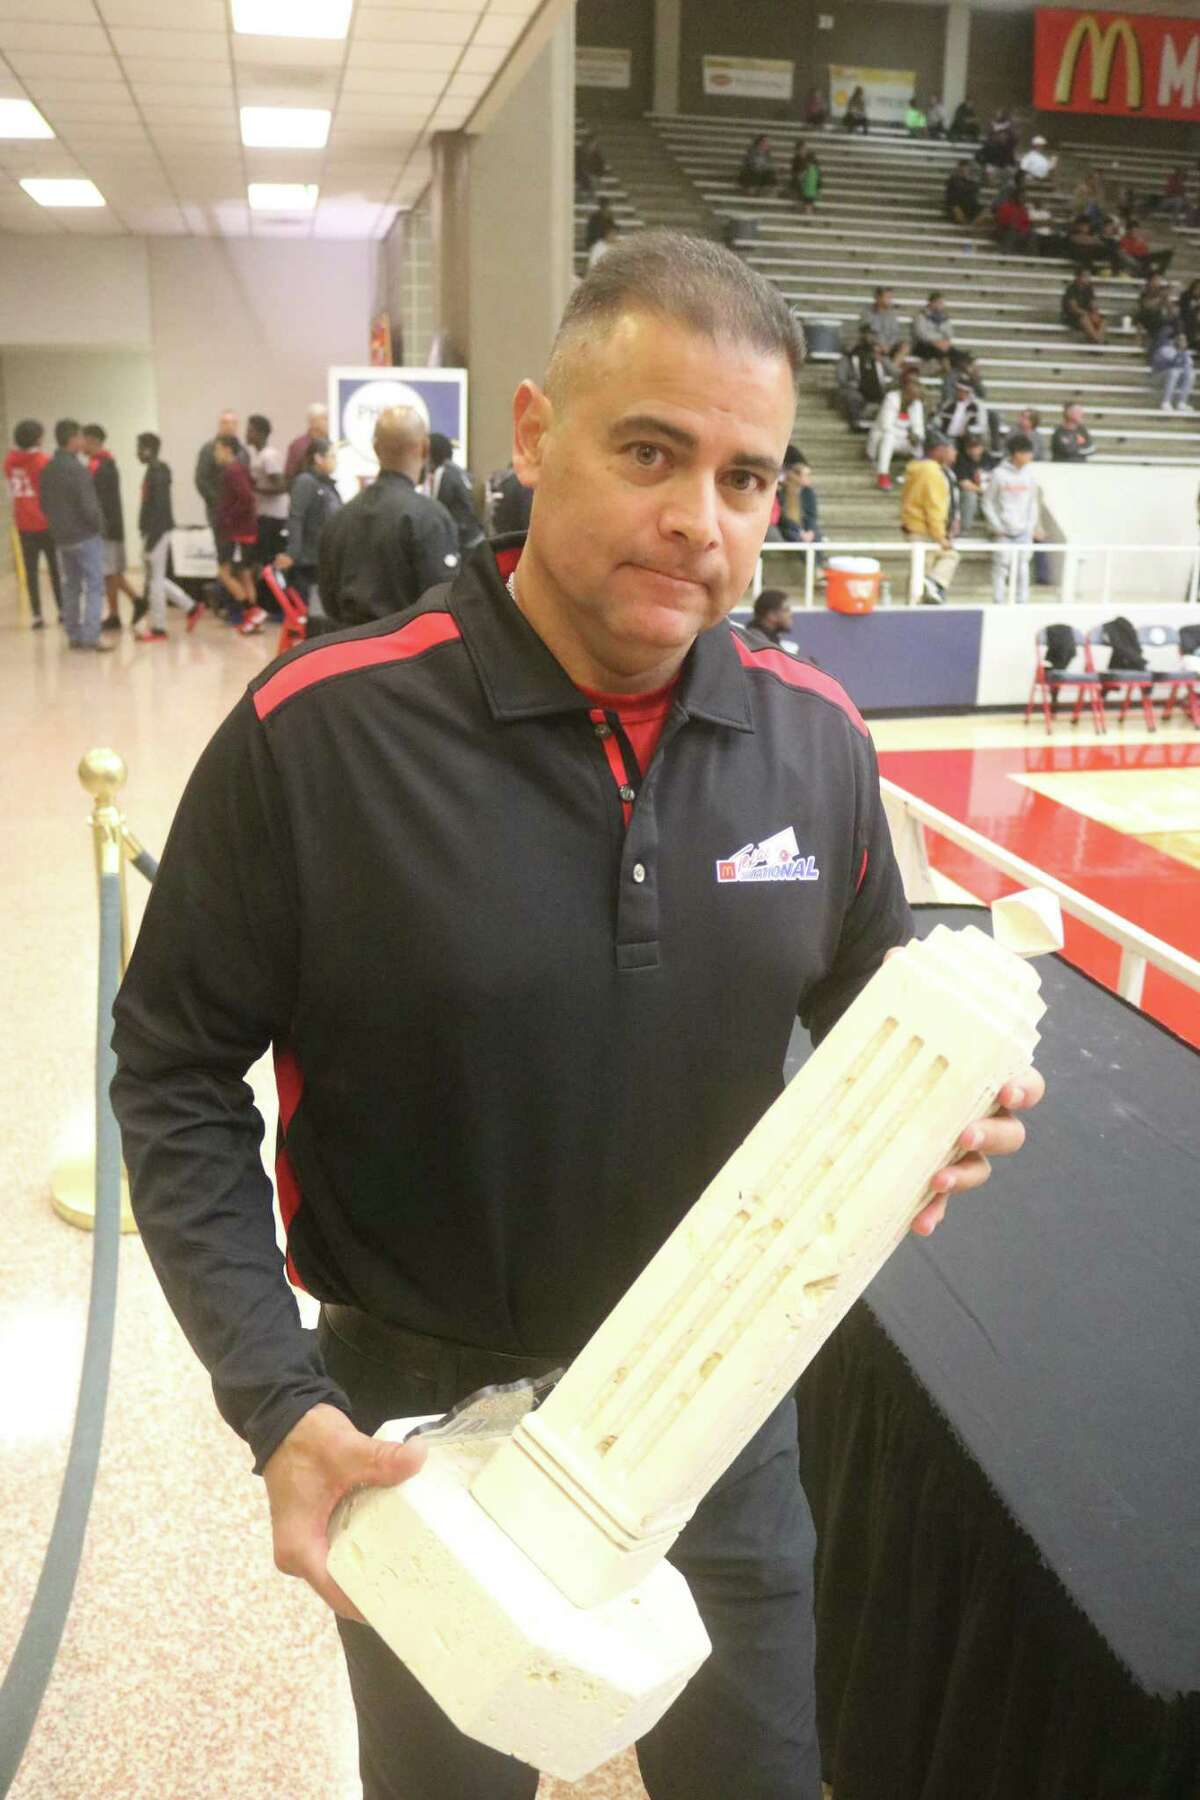 Pasadena ISD Athletic Director Rupert Jaso carries one of the McDonald's Texas Invitational limestone trophies before a championship game at Phillips Field House. Plenty of slots are open for volunteers at Phillips for the upcoming tournament Nov. 18-20.